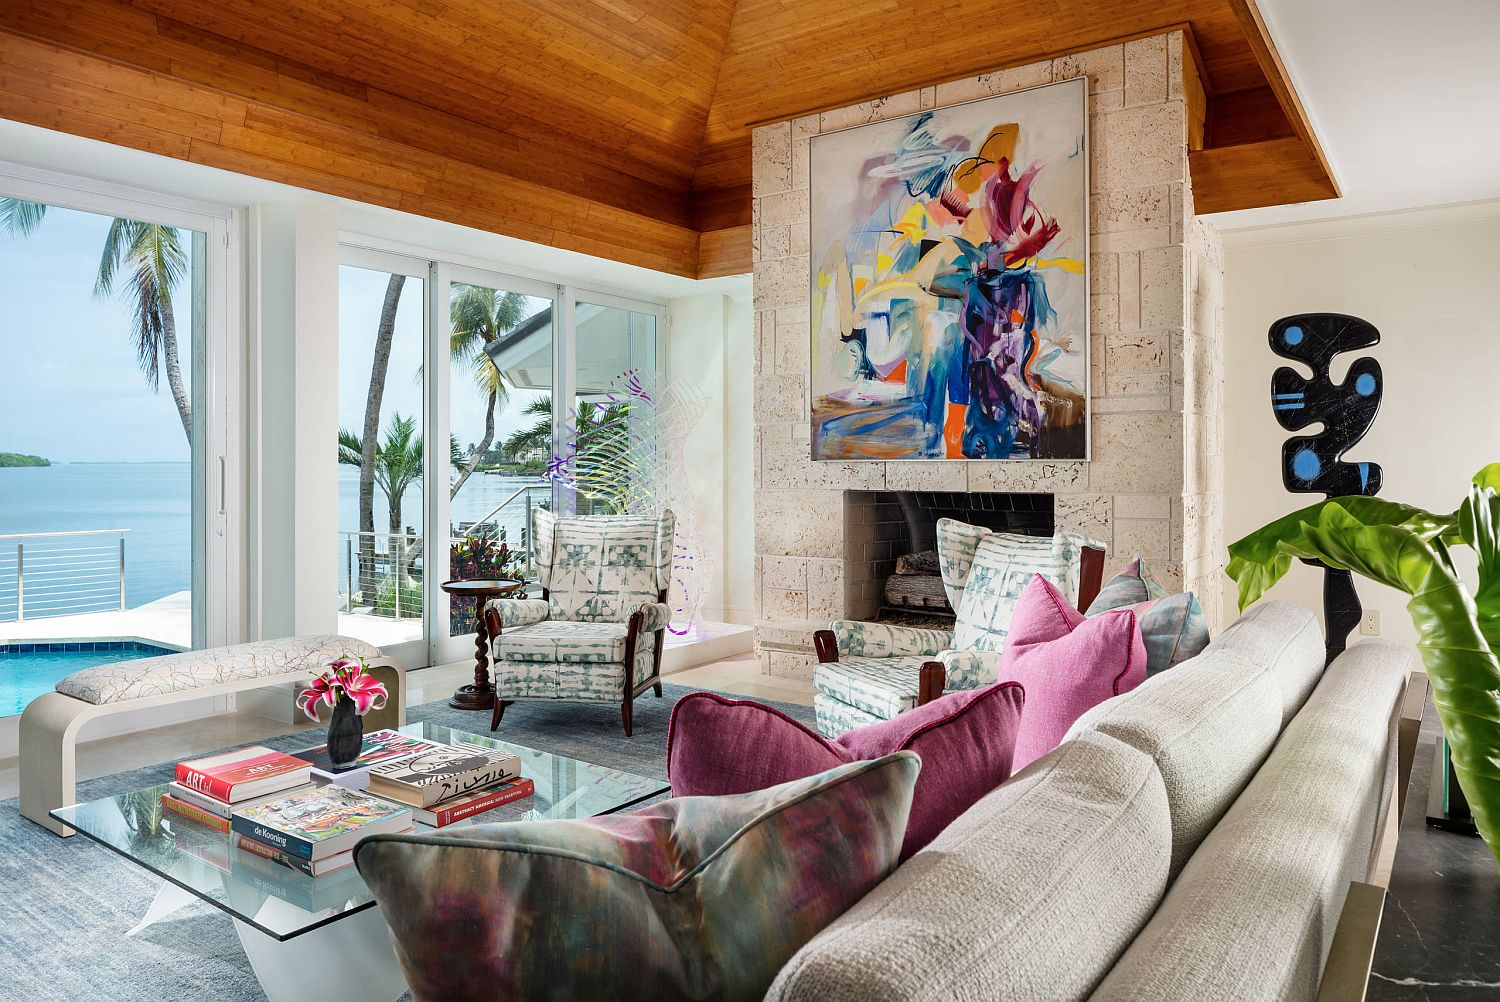 Fireplace-with-colorful-wall-art-sits-at-the-heart-of-the-breezy-tropical-living-room-of-Miami-Home